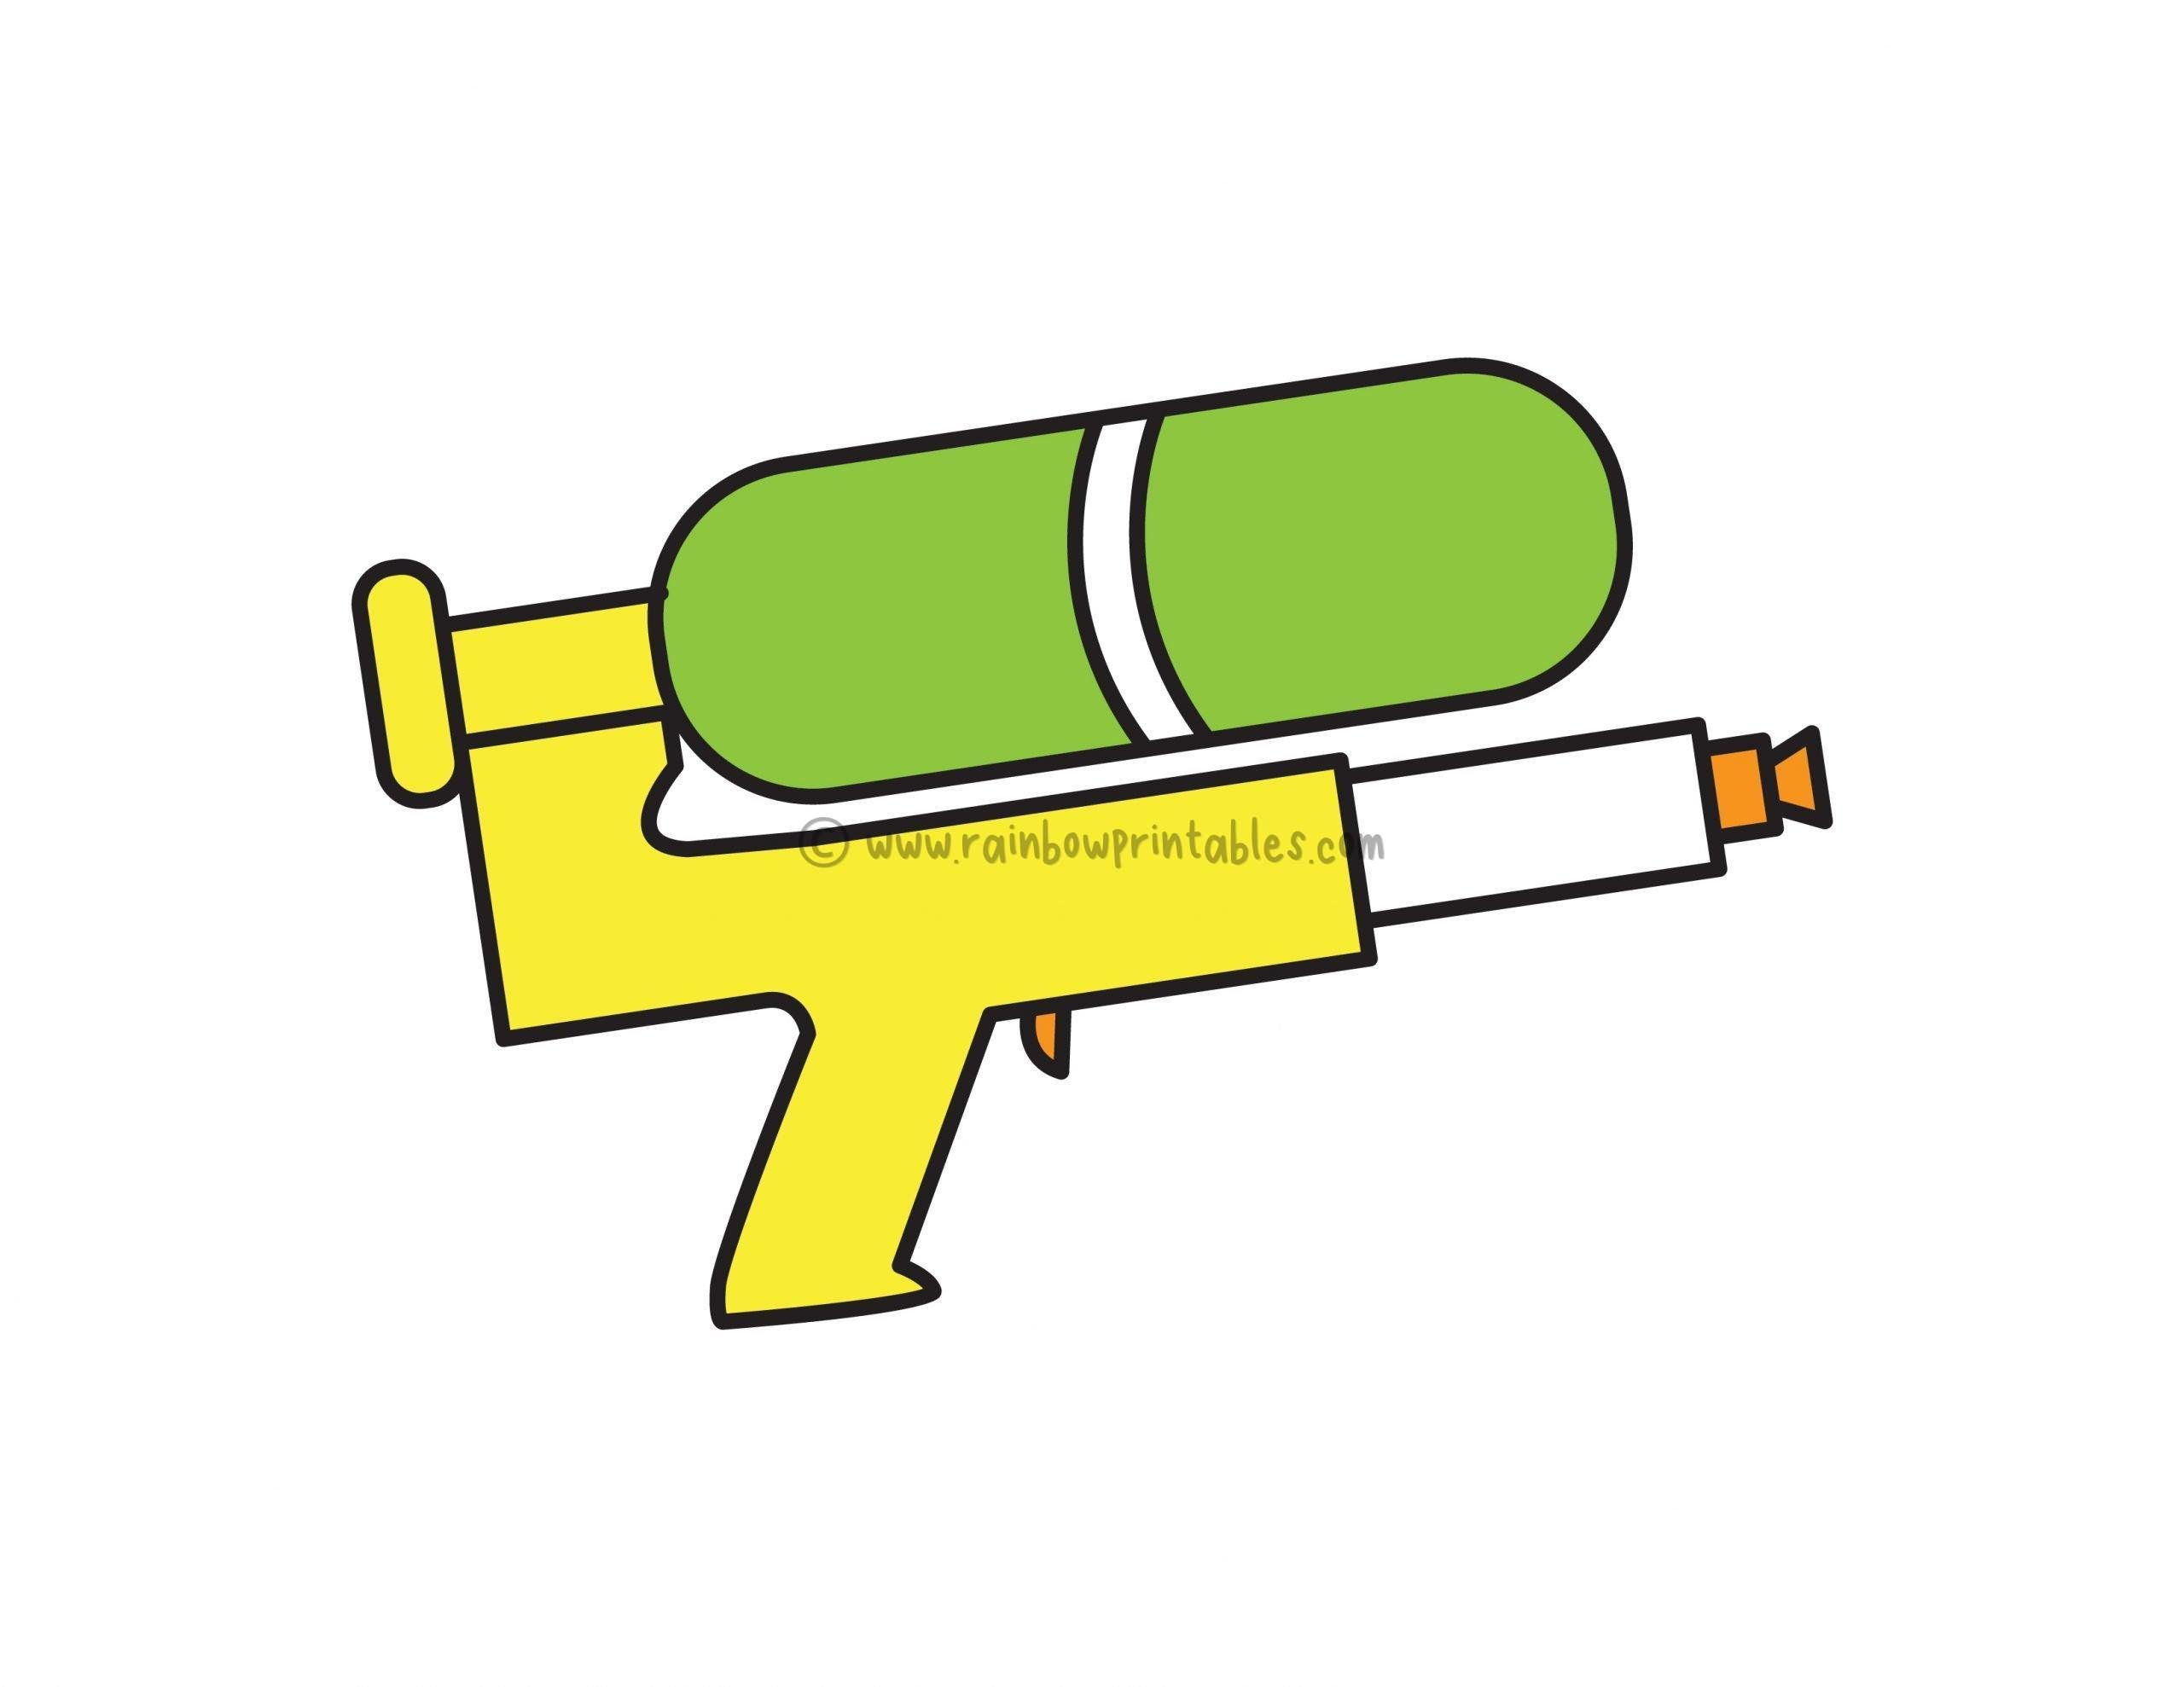 How To Draw a Simple & Easy Water Gun (Super Soaker) for Kids